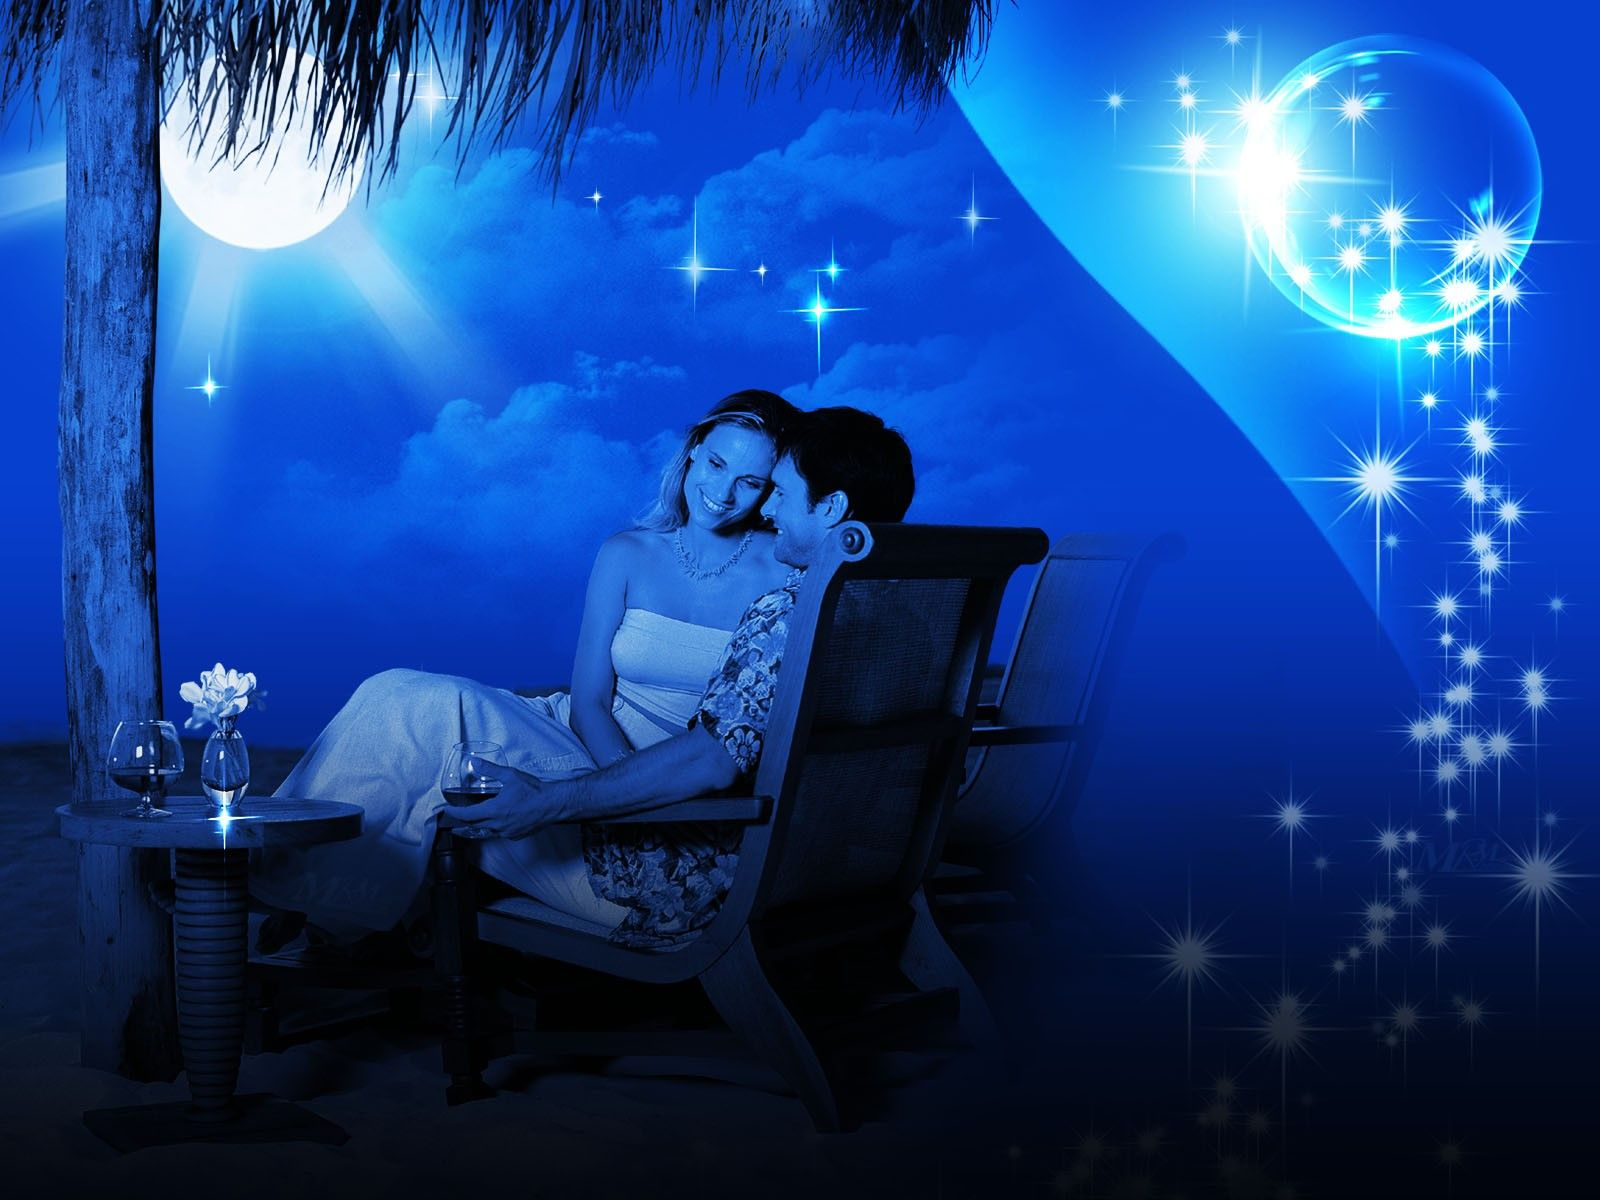 Love Images Hd High Quality : romantic pictures New Romantic Love Full HD Wallpaper #8930 Just another High Quality ...